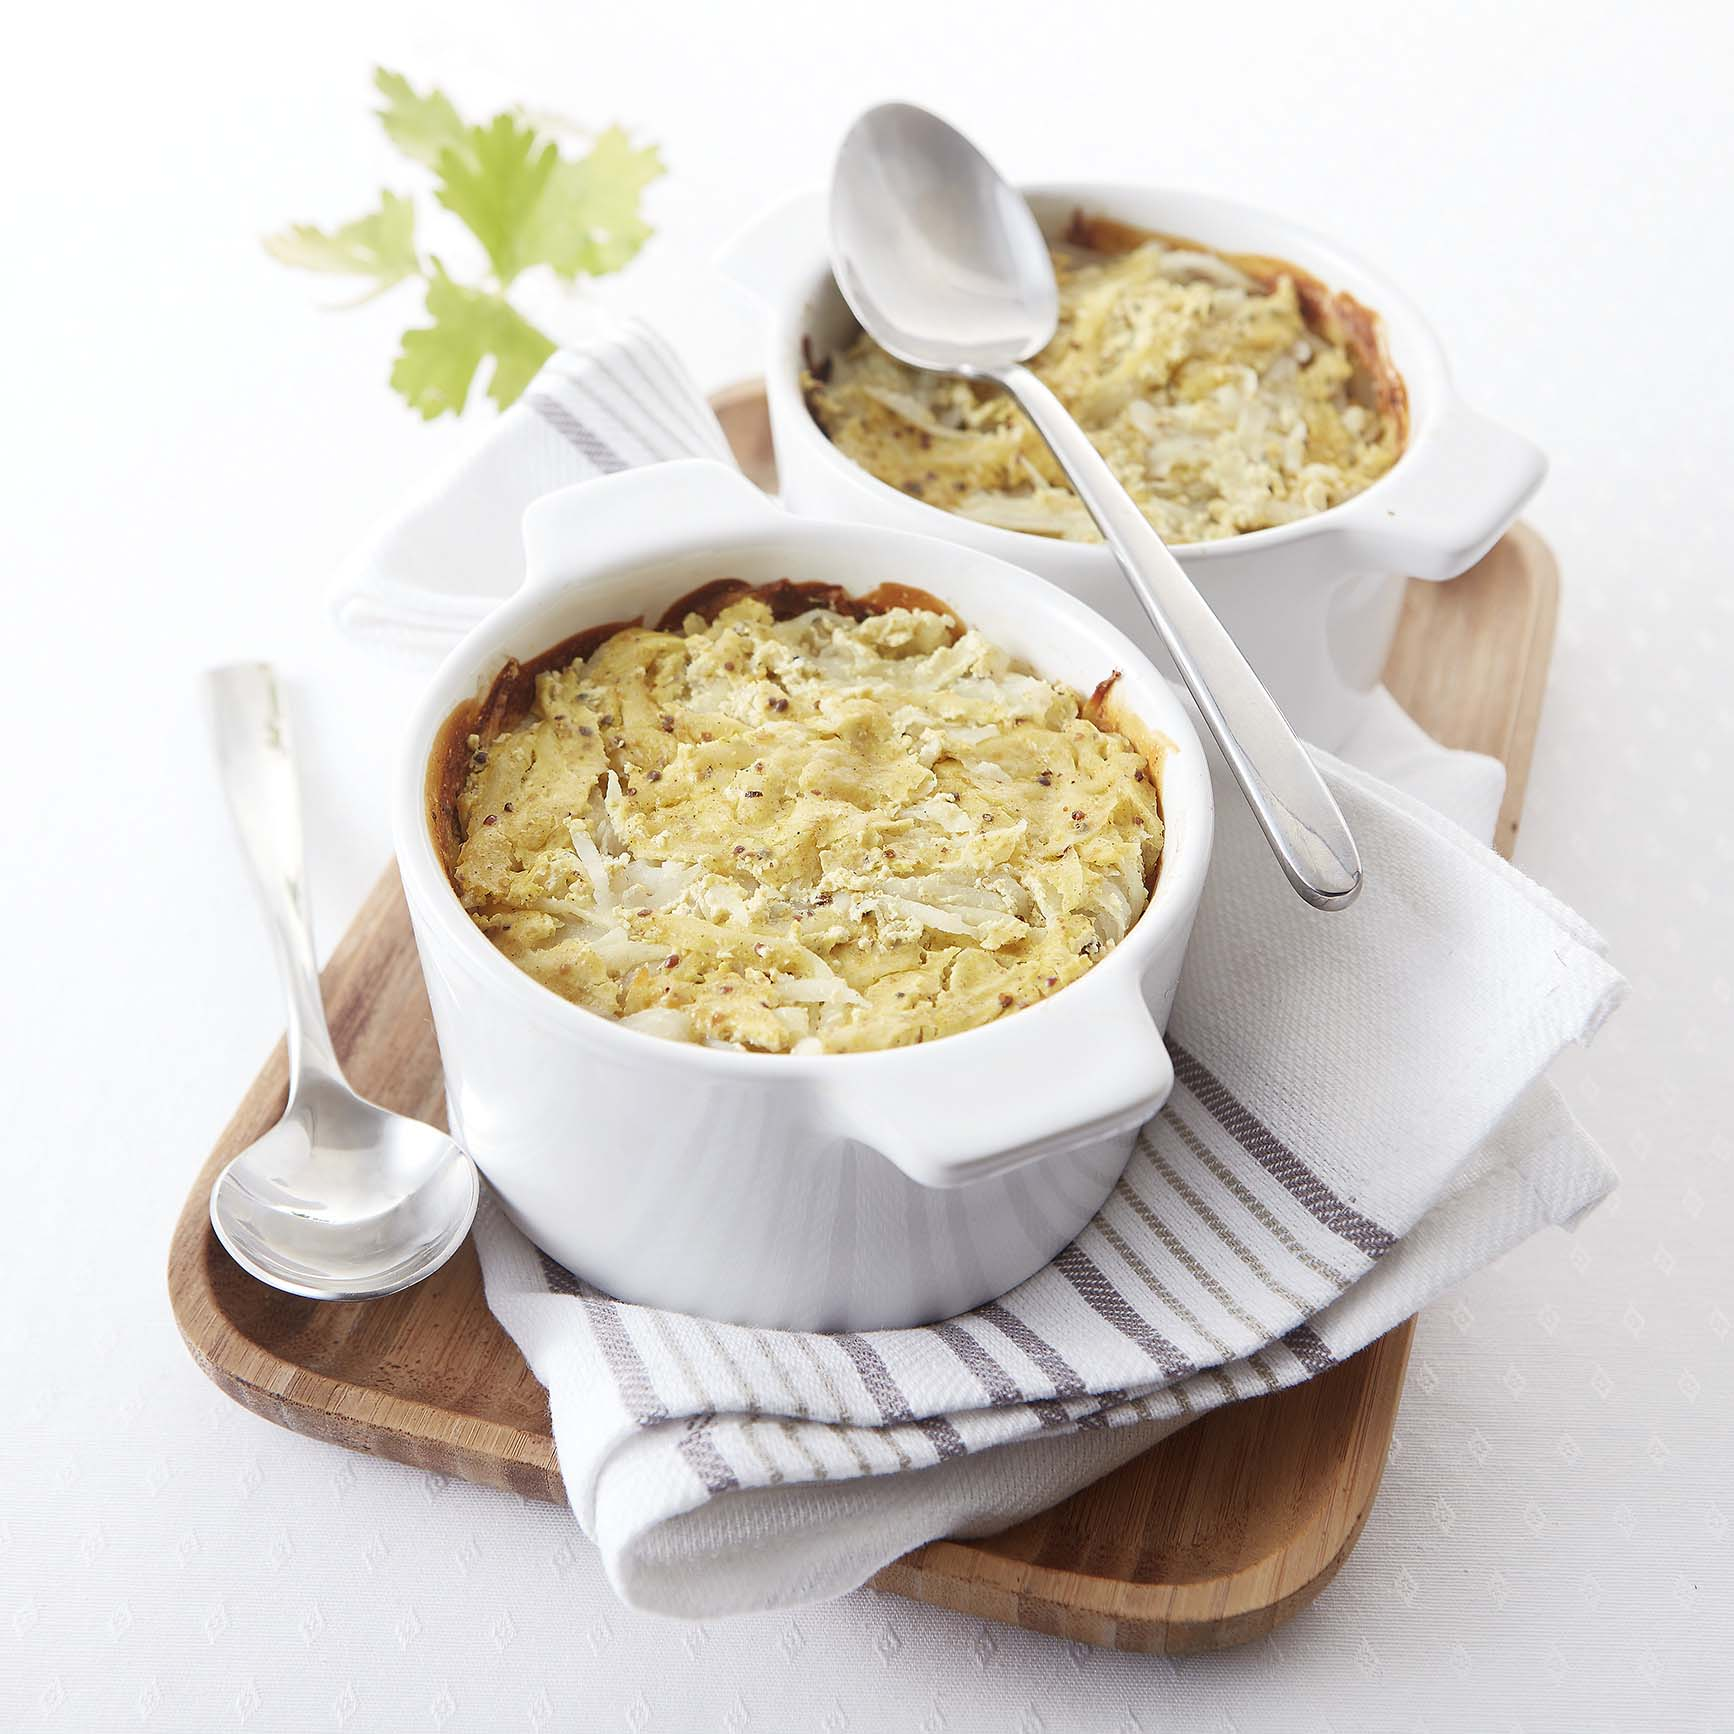 gratin de pomme de terre la cr me de soja cooking chef de kenwood espace recettes. Black Bedroom Furniture Sets. Home Design Ideas